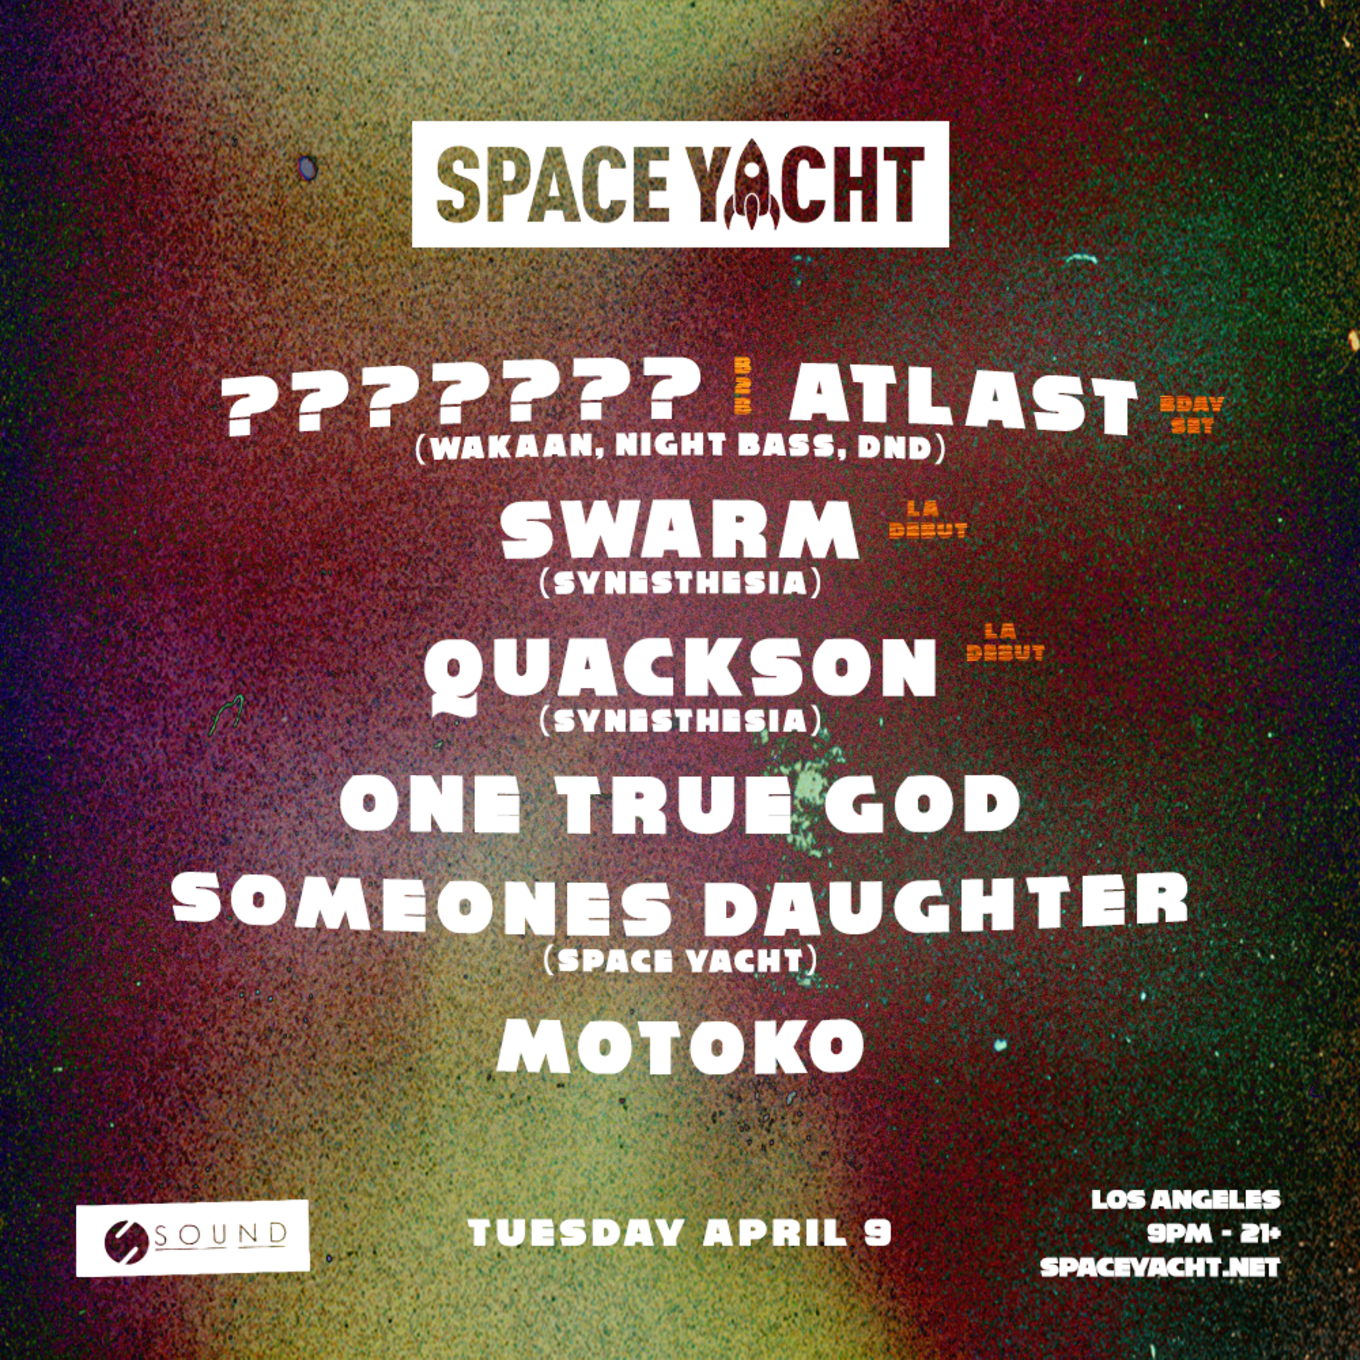 d701bfd1e Space Yacht  Mid-tempo Madness - Tickets - Sound Nightclub